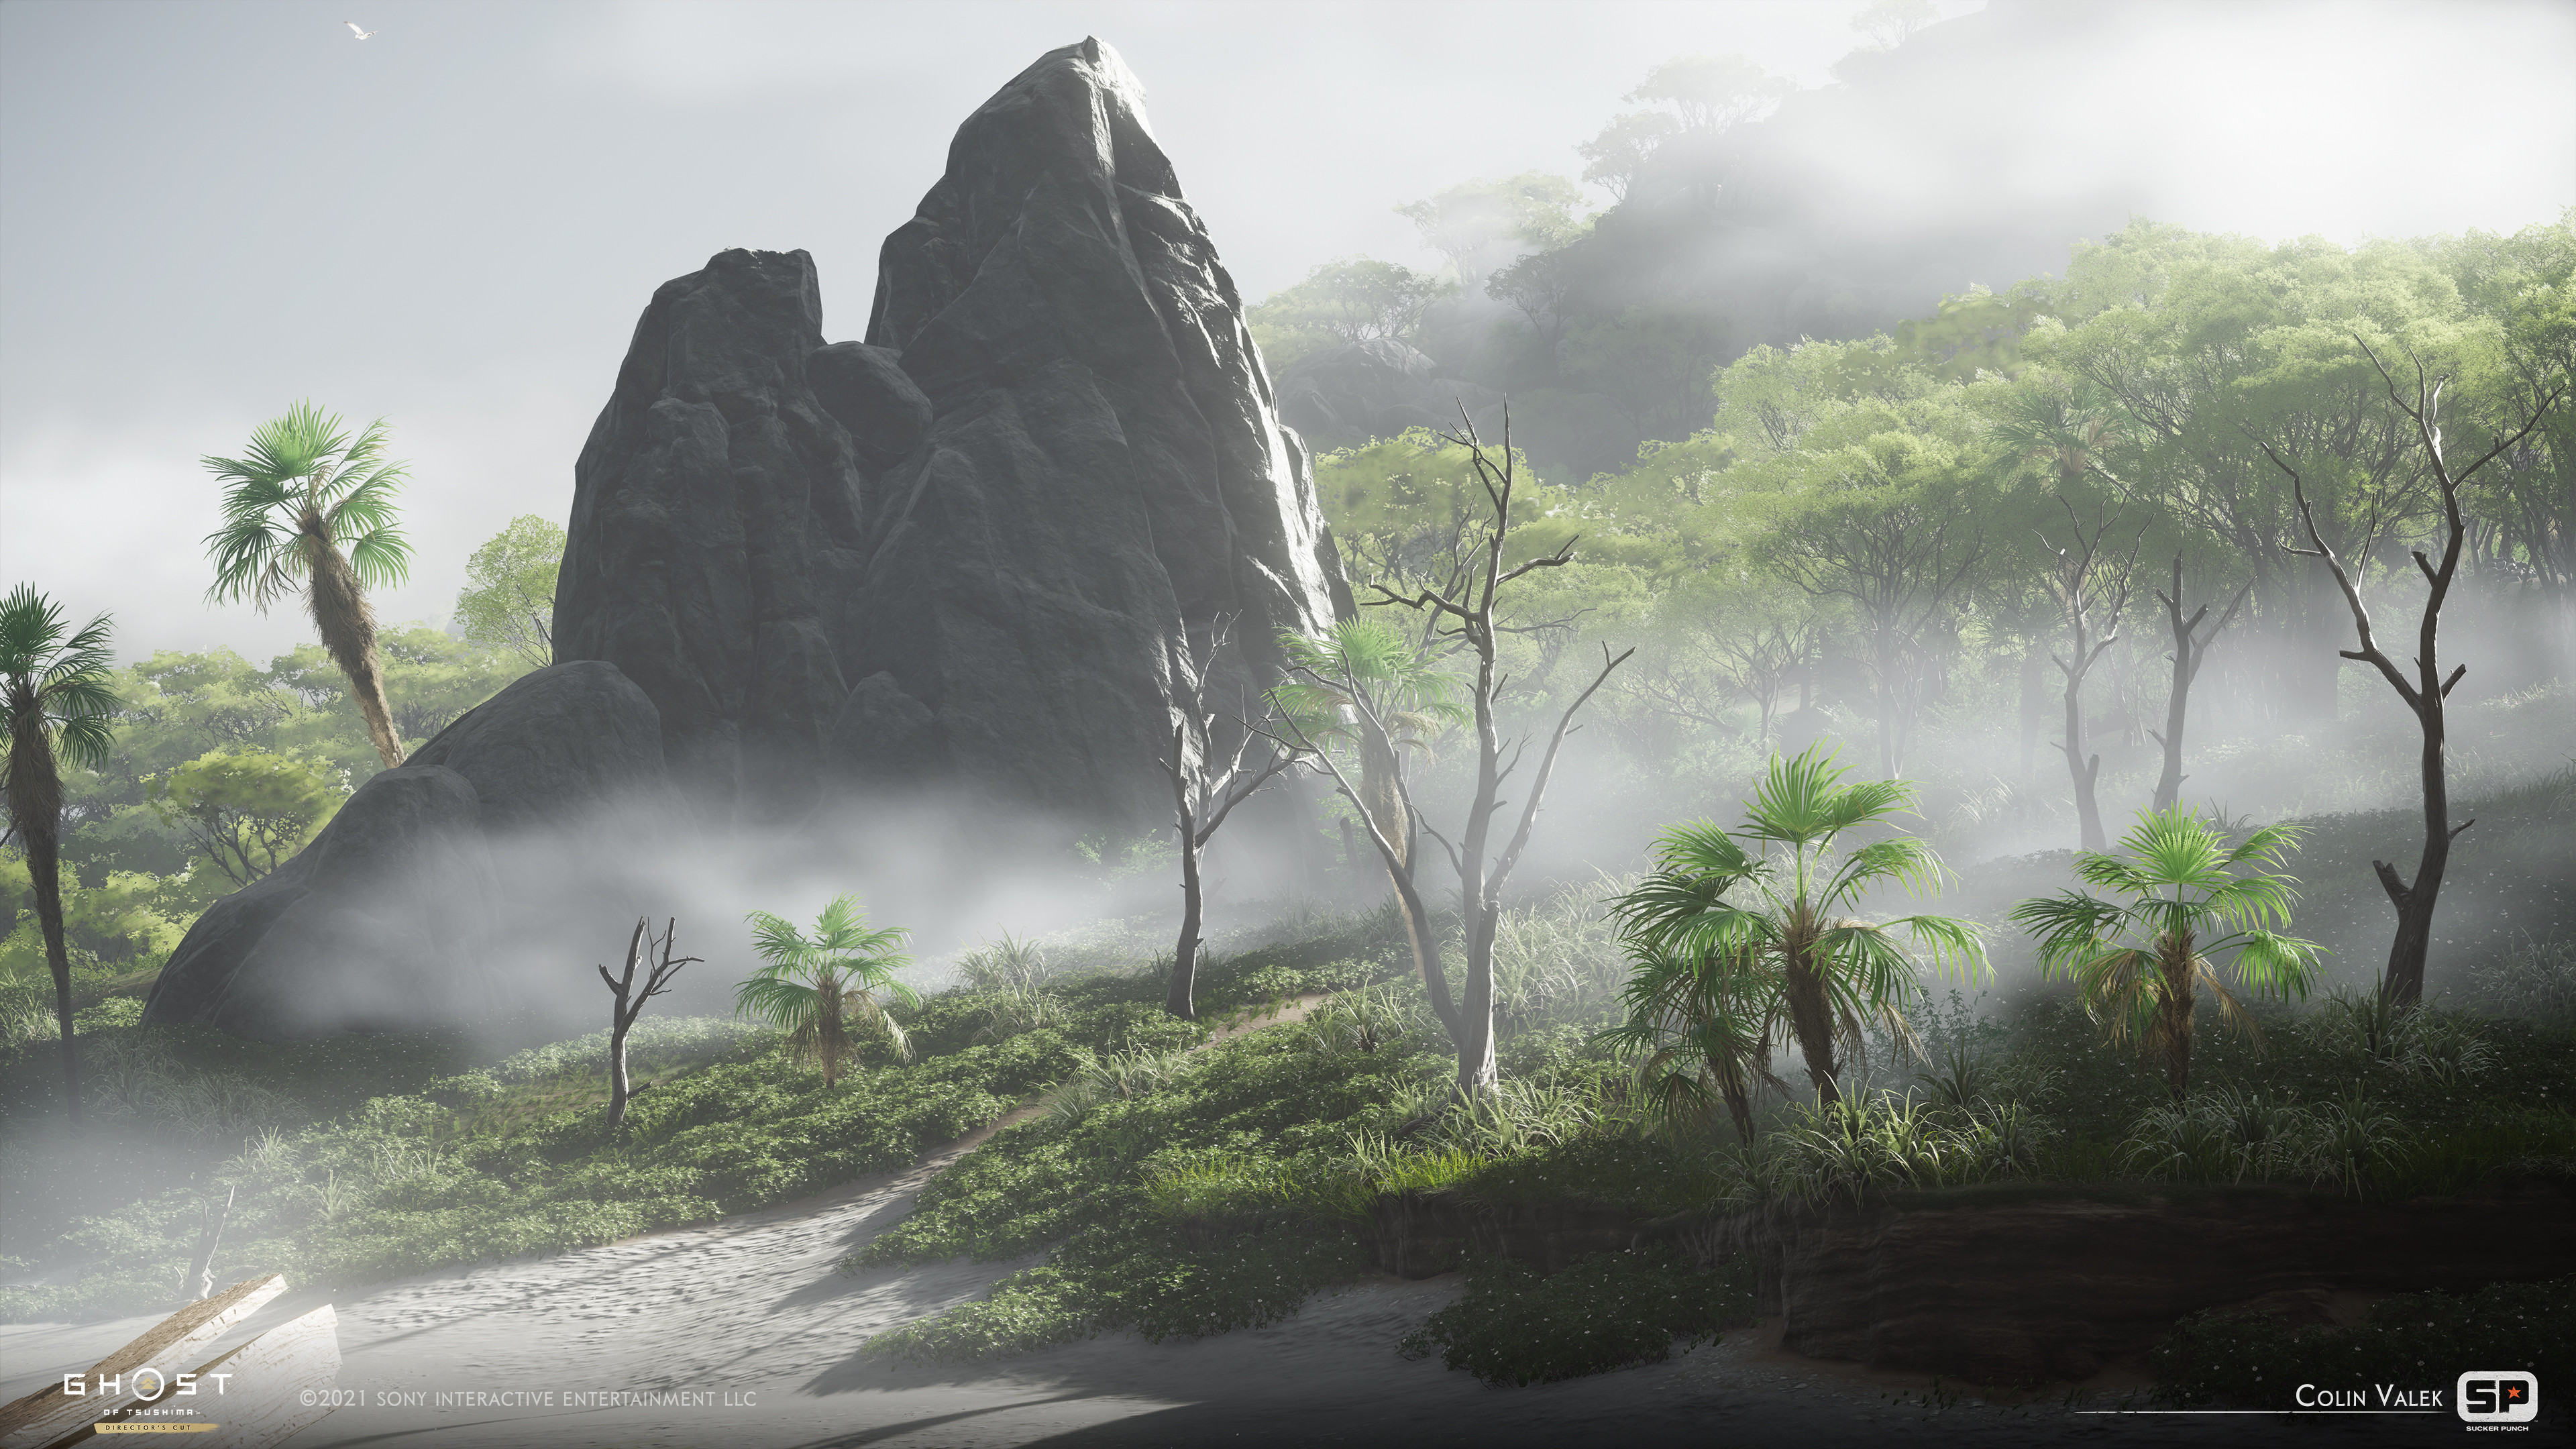 Terrain sculpting, vegetation dressing, and biome creation. Worked alongside Lisa Liao.